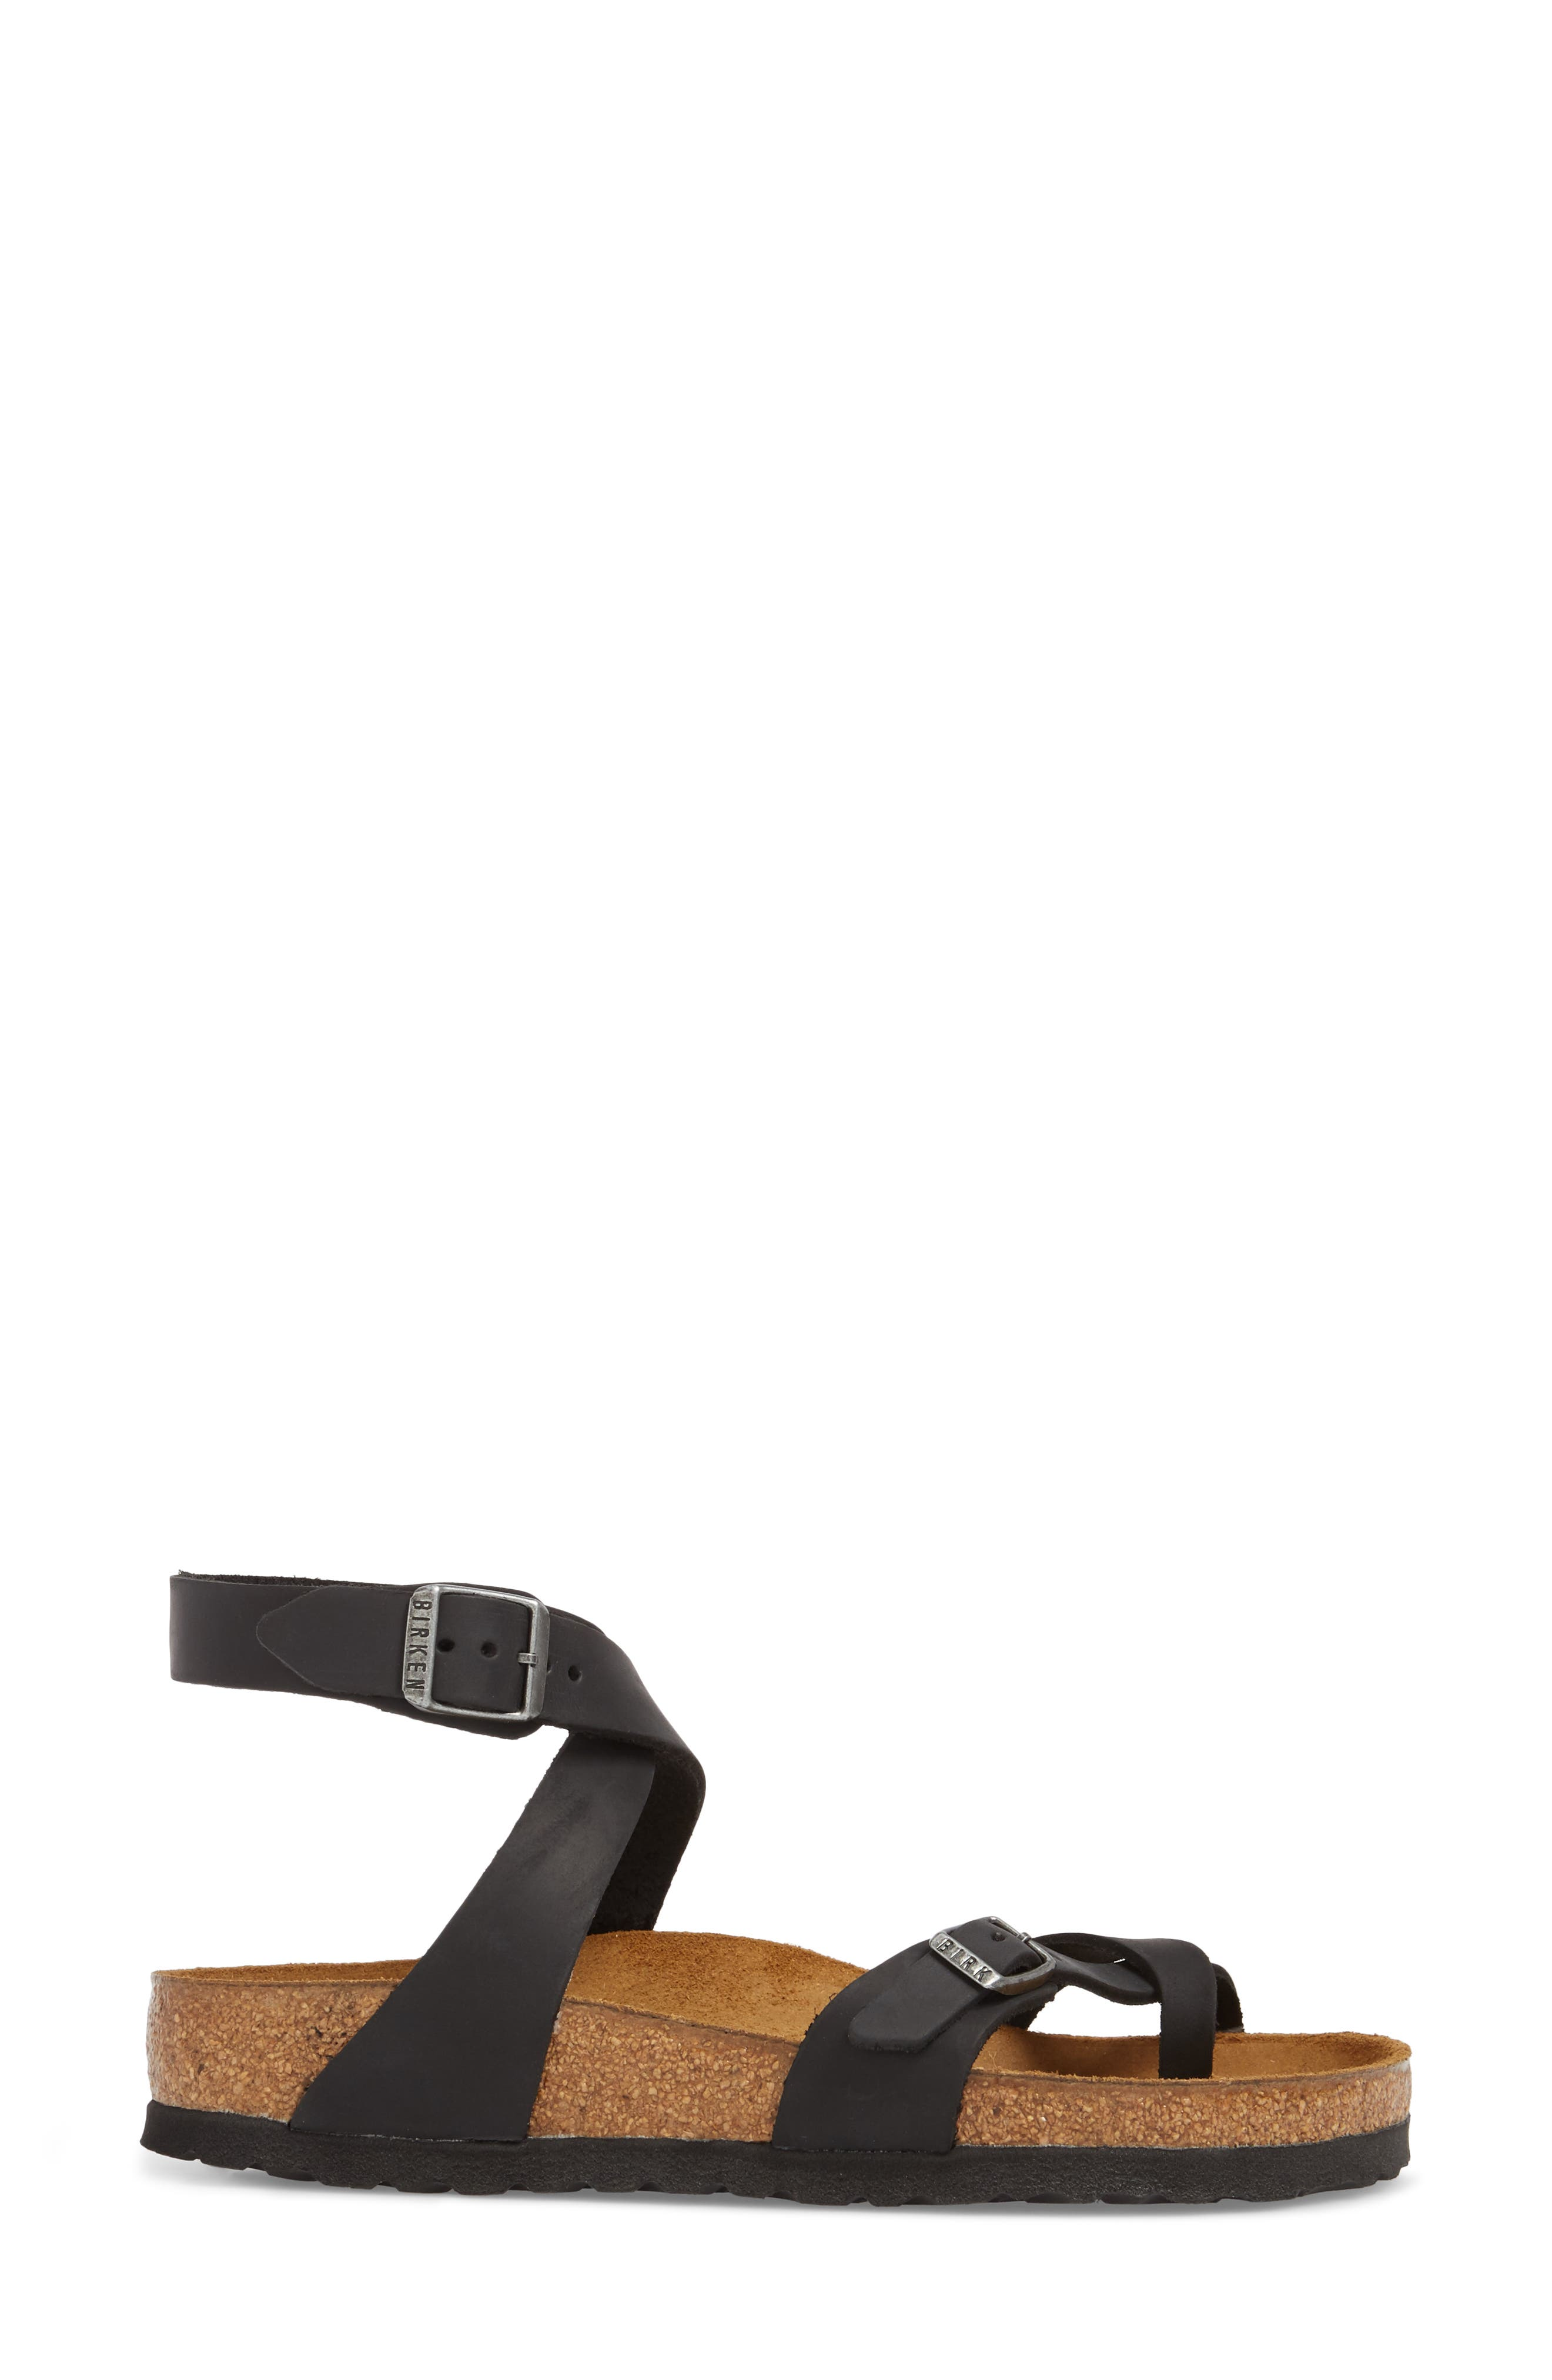 'Yara' Sandal,                             Alternate thumbnail 3, color,                             BLACK OILED LEATHER